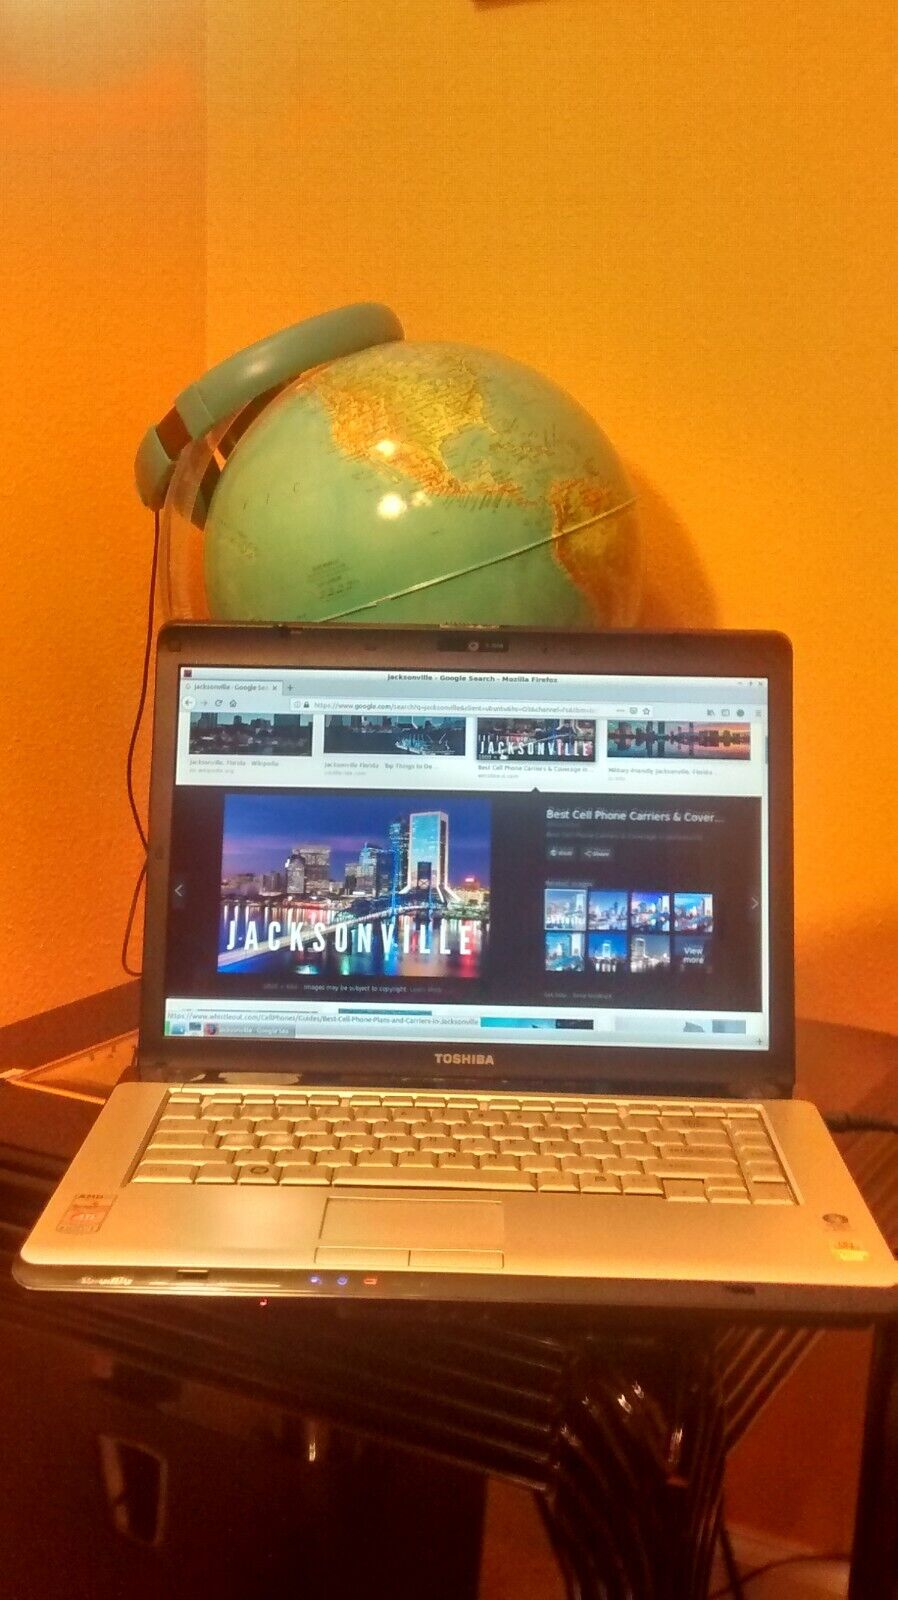 Toshiba Laptop Satellite A215-s4747 AMD Turion 64 X2 Tl-56) 2 GB MEM